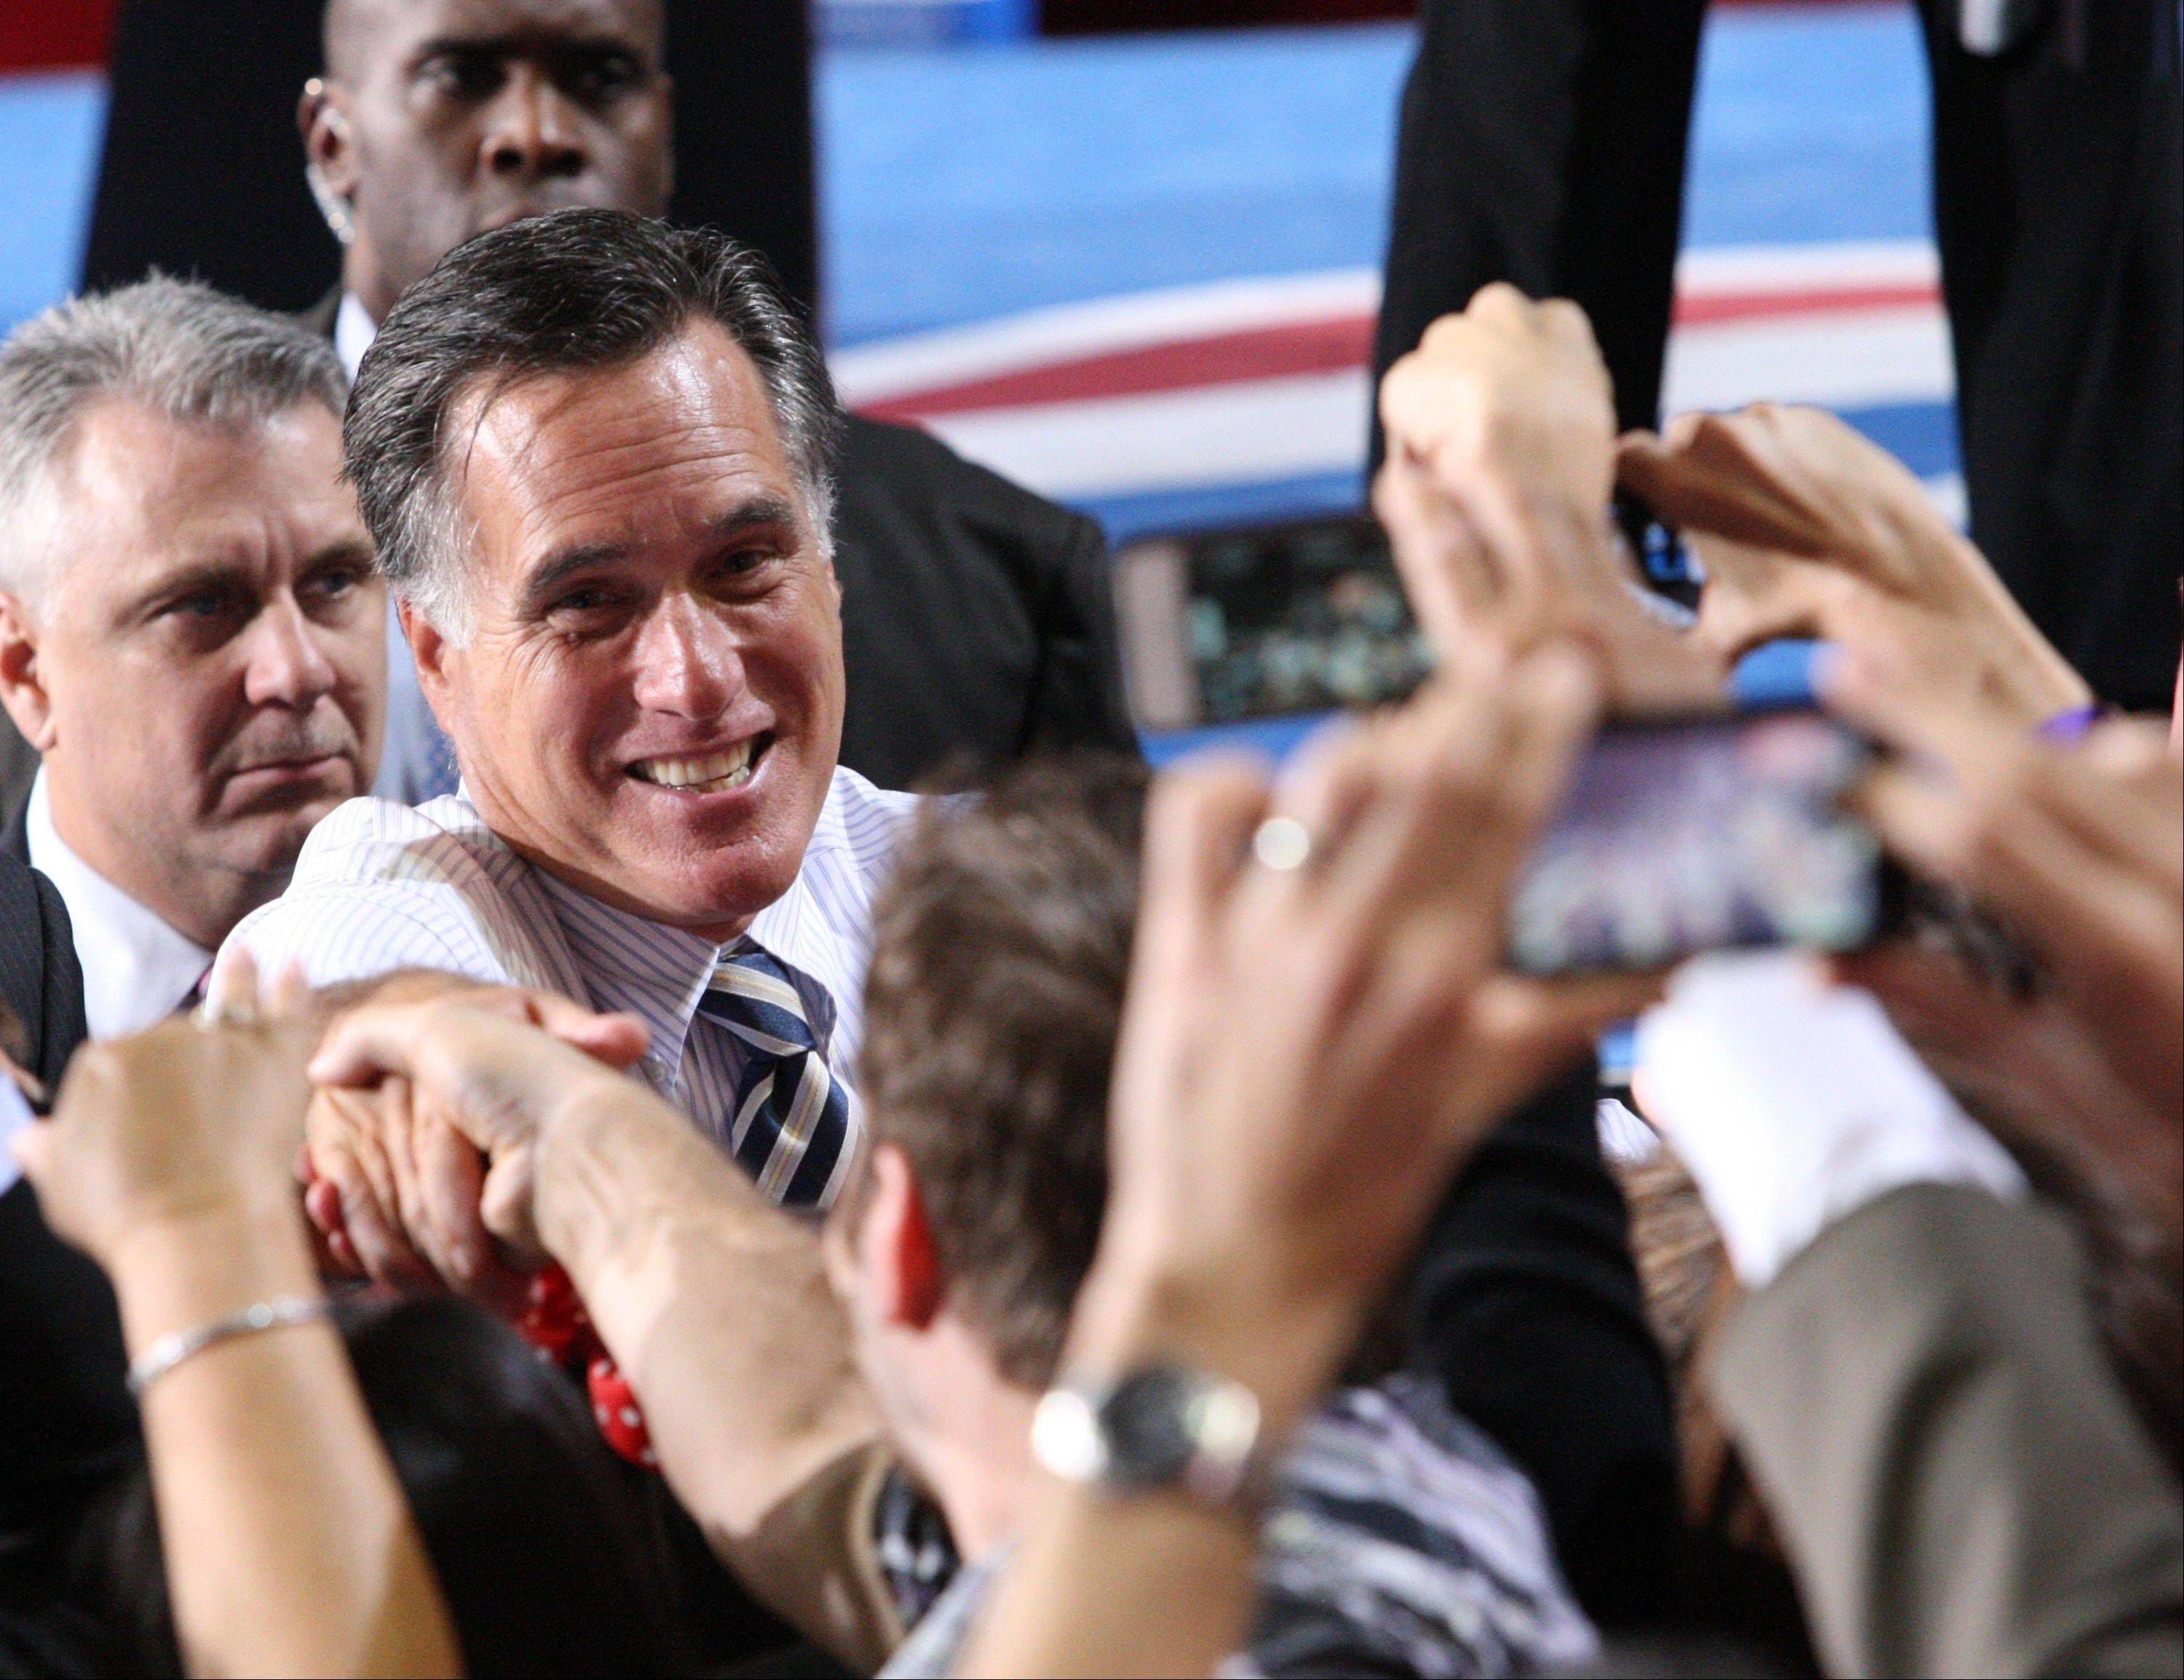 Republican presidential candidate Mitt Romney shakes hands at a campaign event at the University of Miami on Wednesday in Coral Gables, Fla.